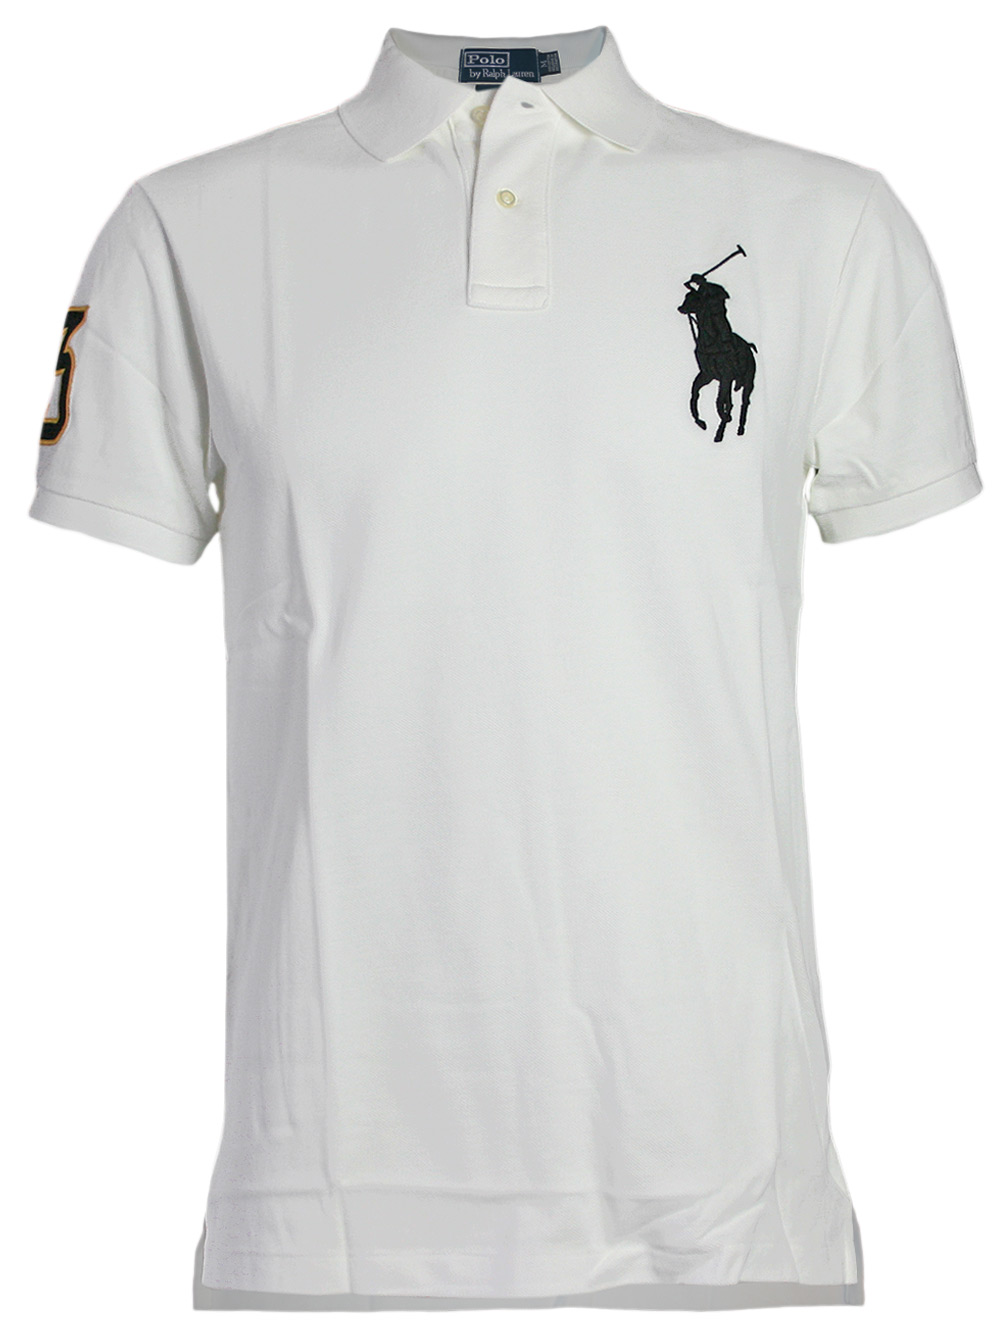 ralph lauren herren 3 big pony polo shirt wei neu ebay. Black Bedroom Furniture Sets. Home Design Ideas